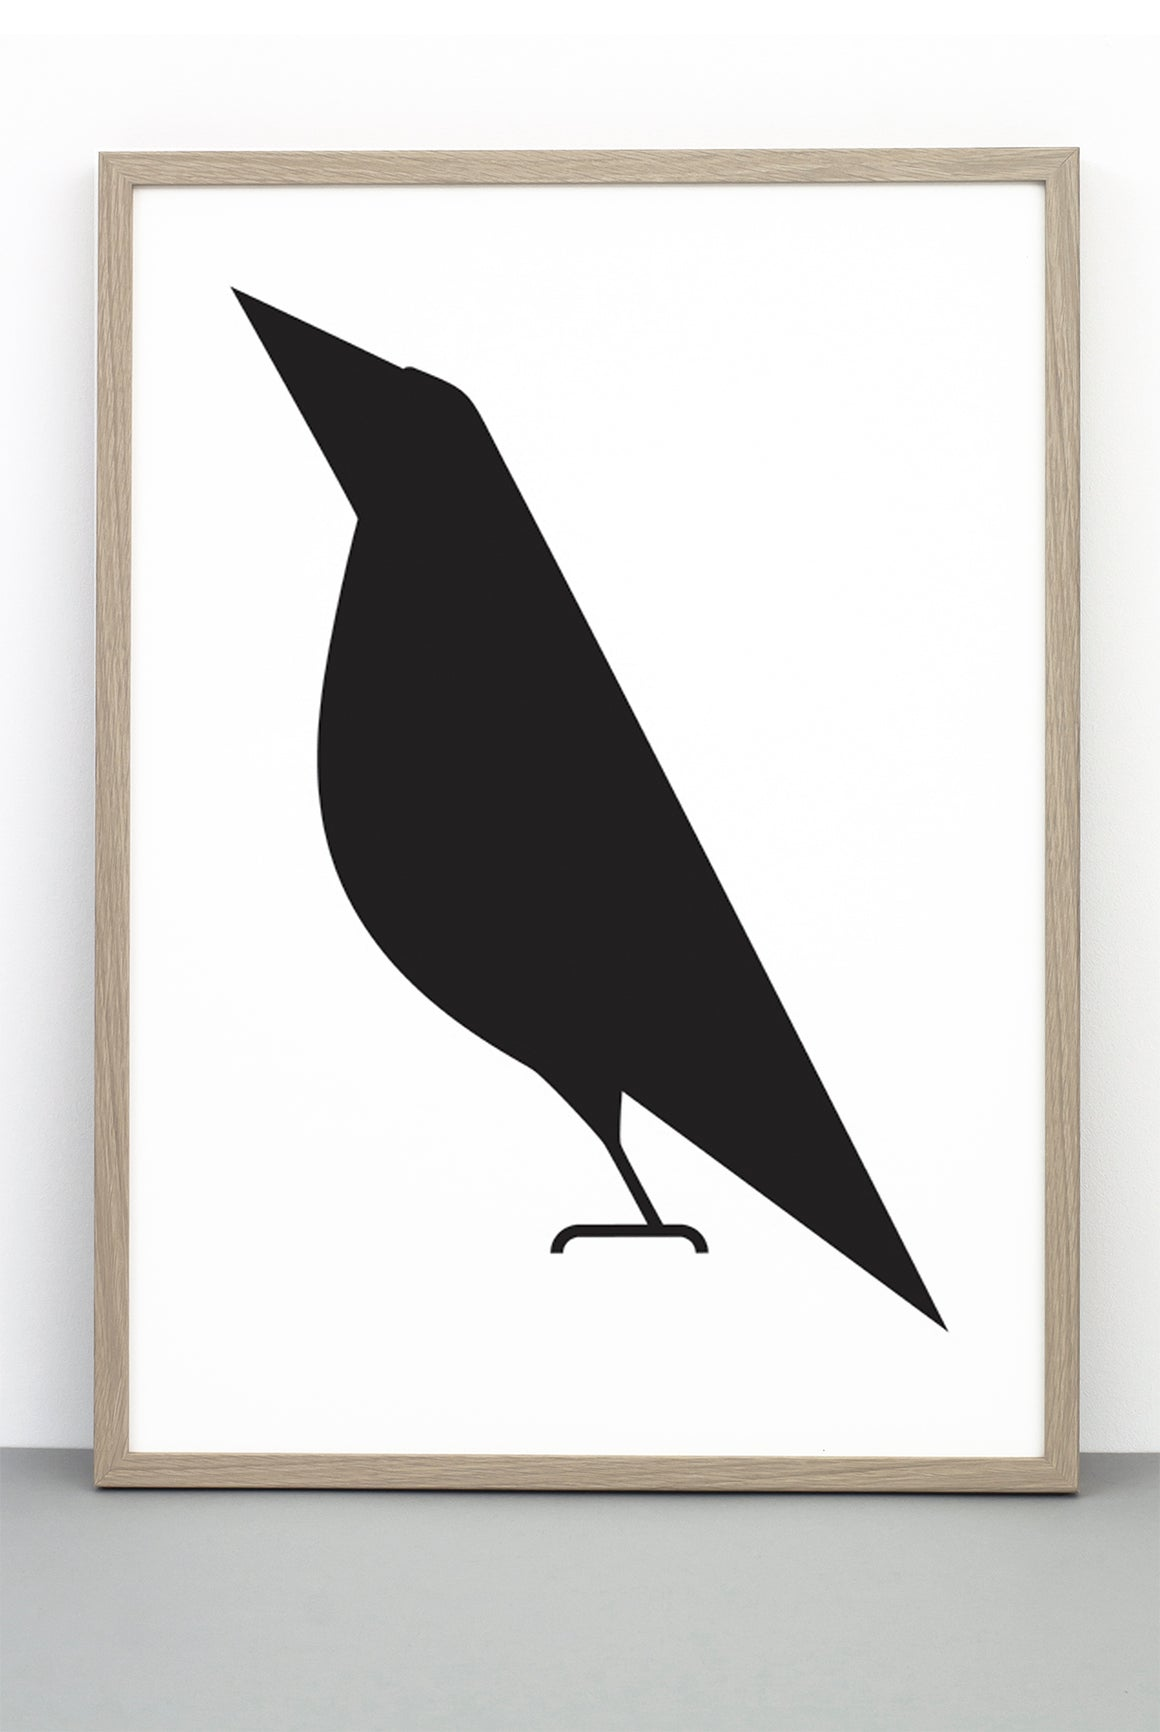 THE ONLY WAY IS UP BIRD PRINT, ILLUSTRATIVE BIRD BLACK AND WHITE POSTER